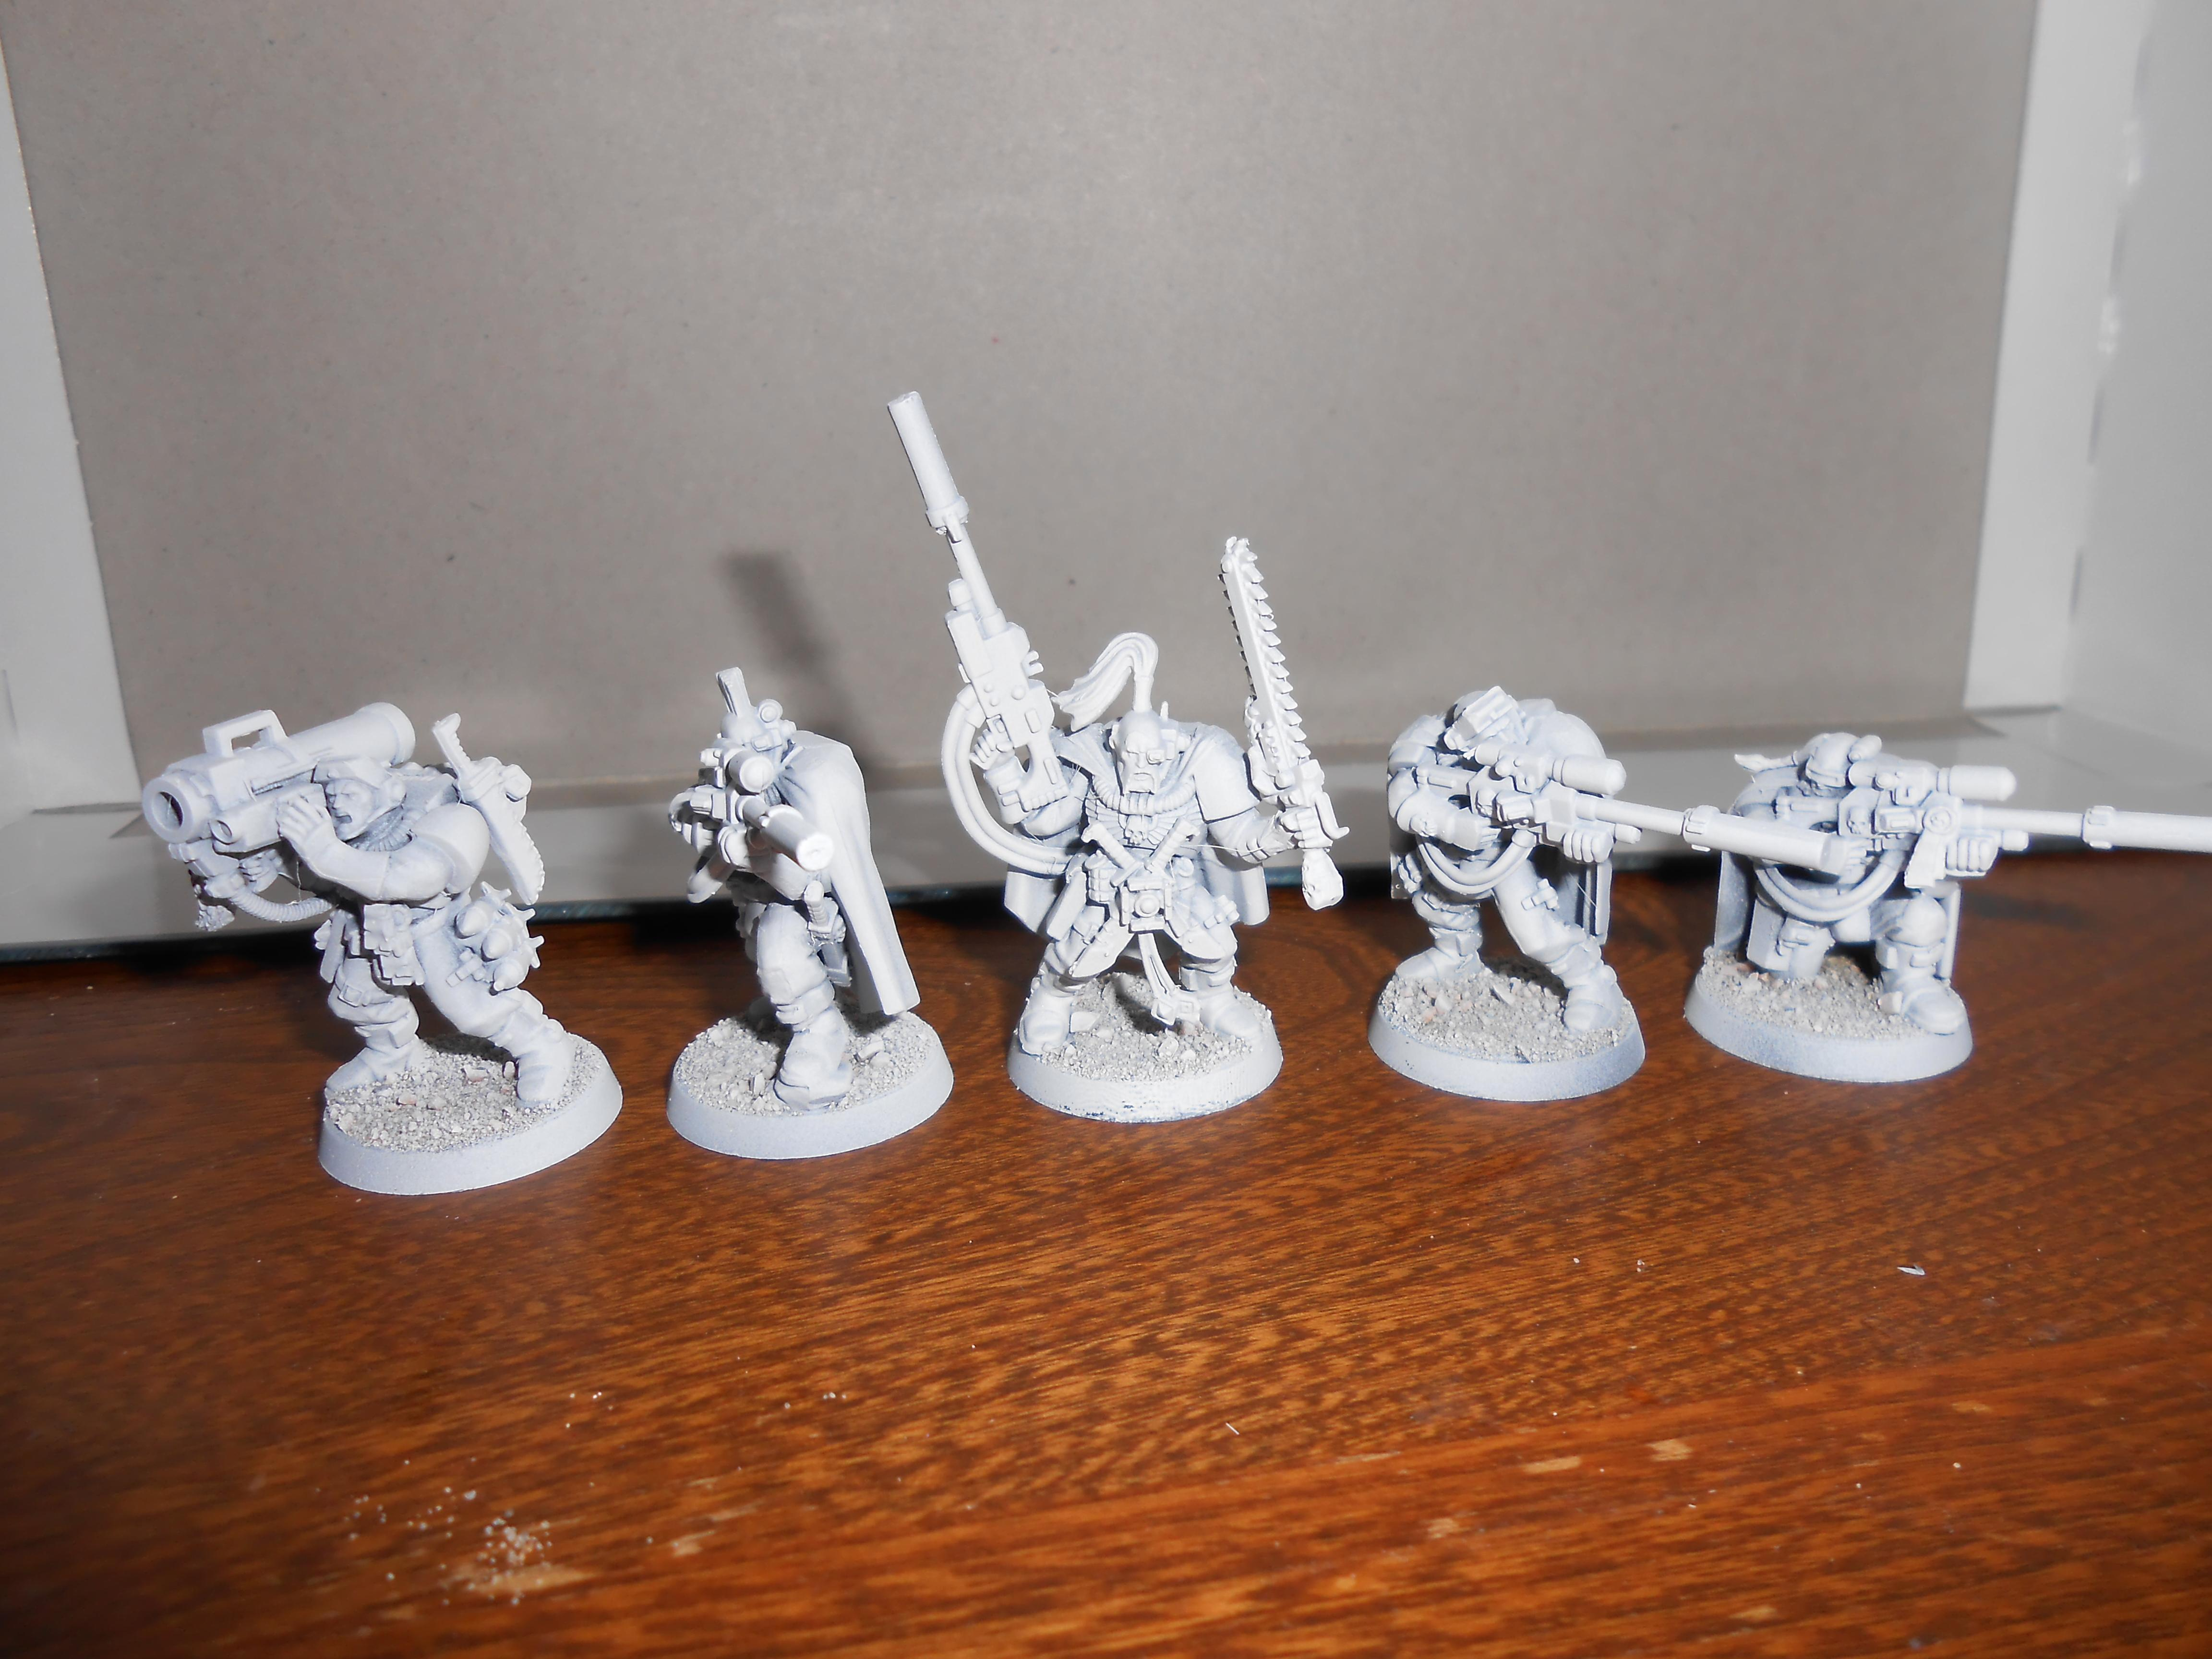 Scouts, Space Marines, White Scars